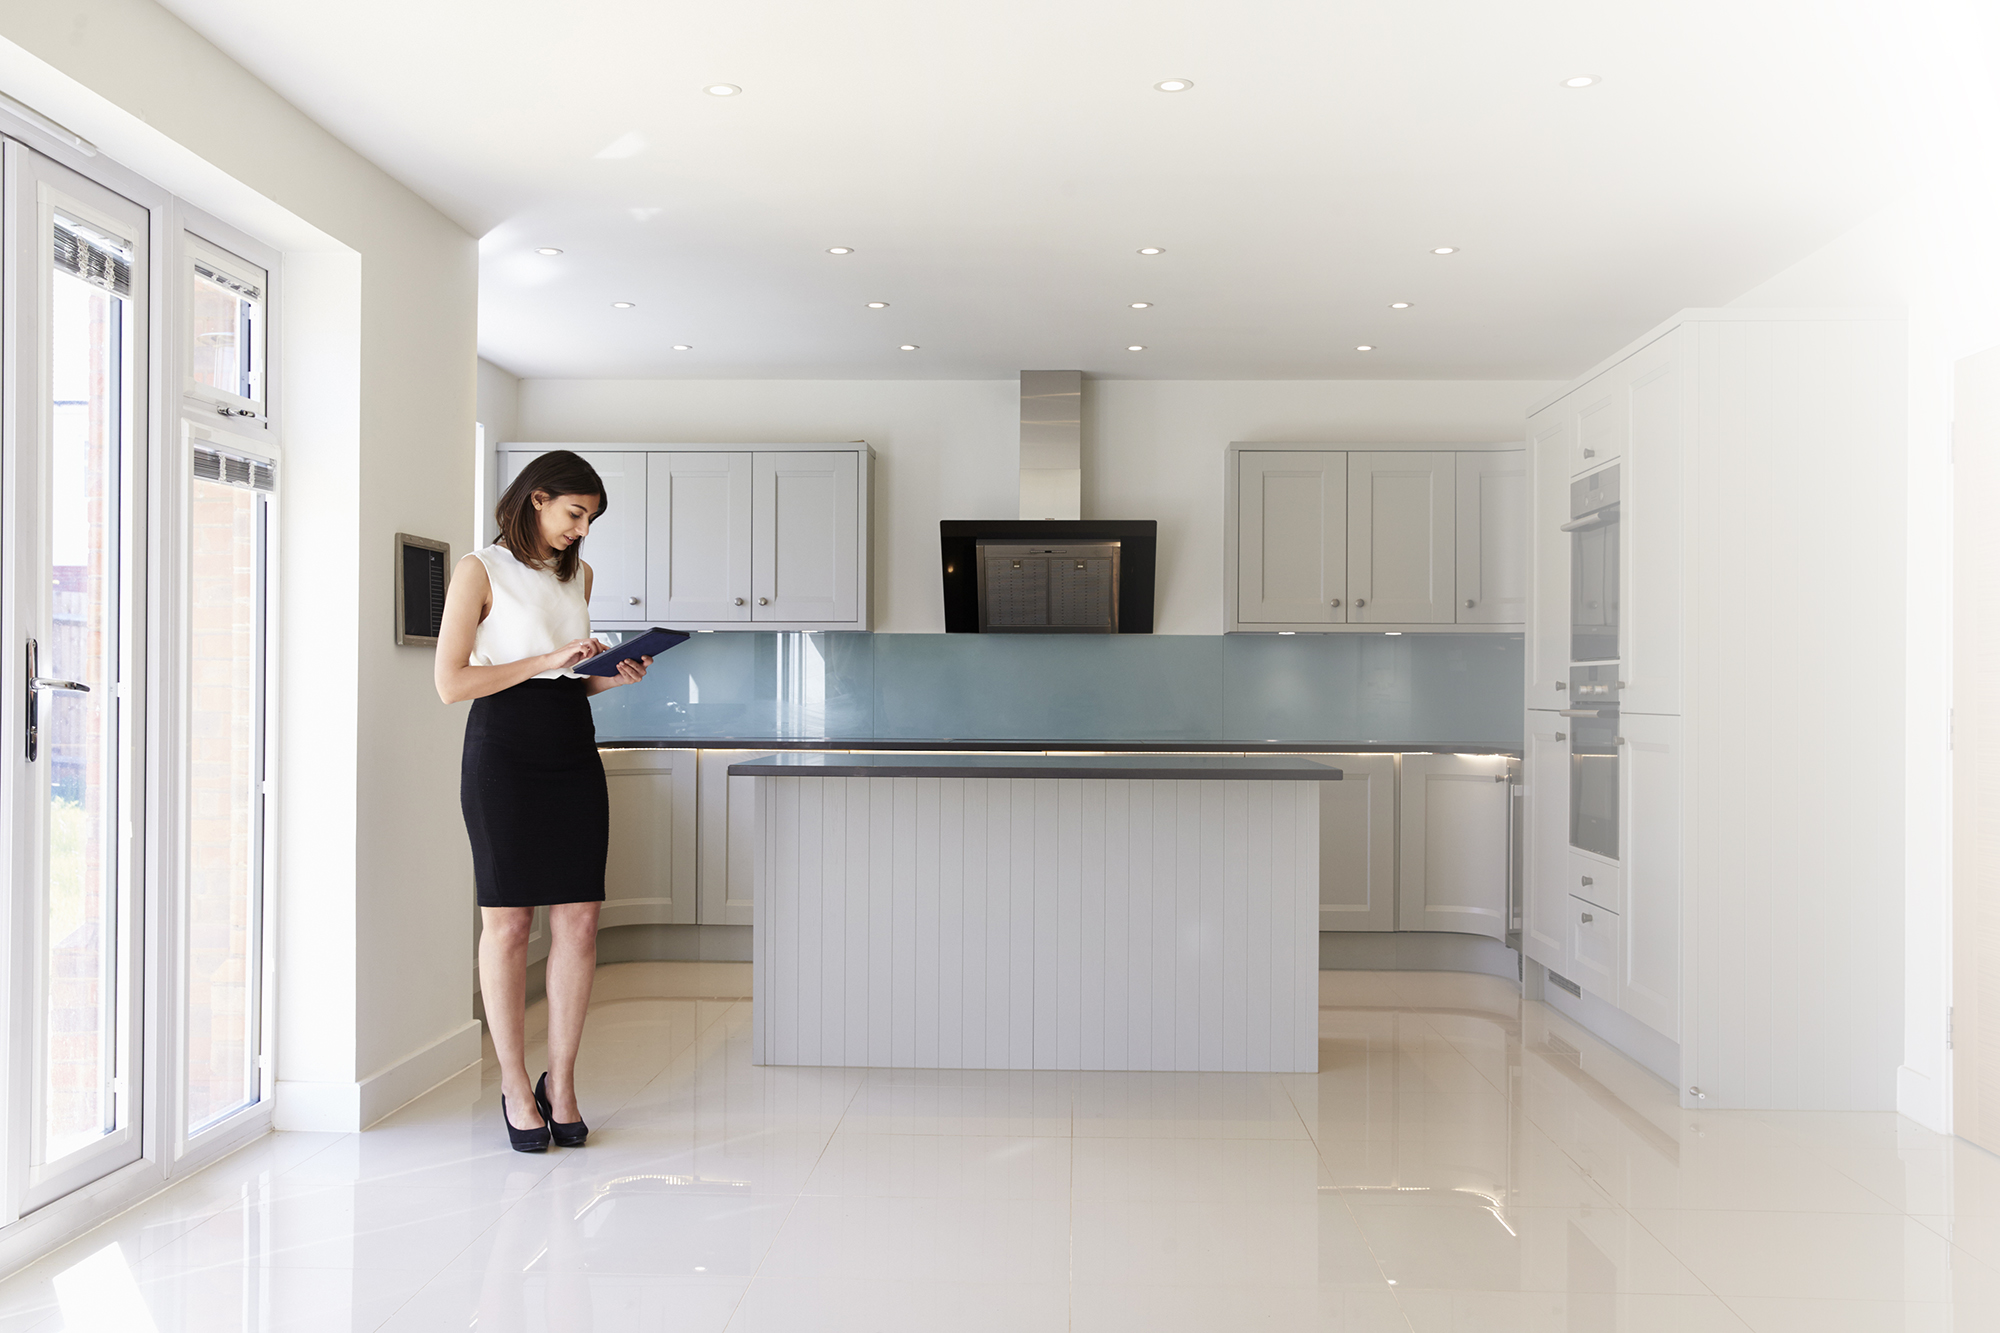 female-realtor-in-kitchen-carrying-out-valuation-P5ZSZWL.jpg